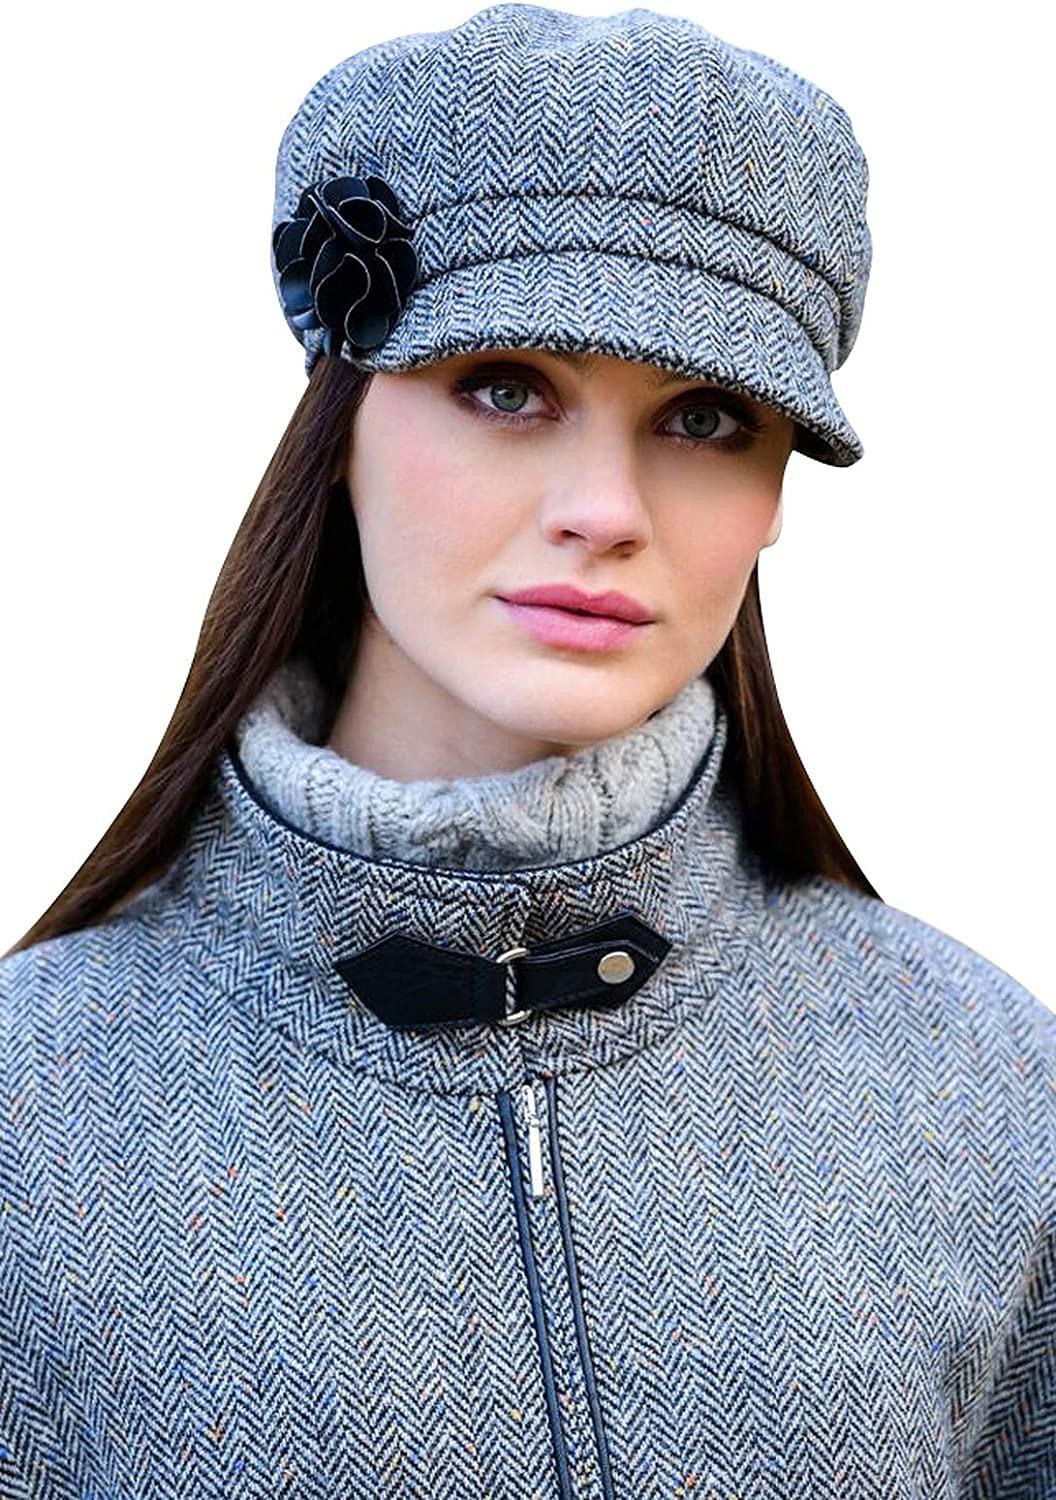 Ladies Tweed Newsboy Cap, Made in Ireland, One Size Fits All, Gr